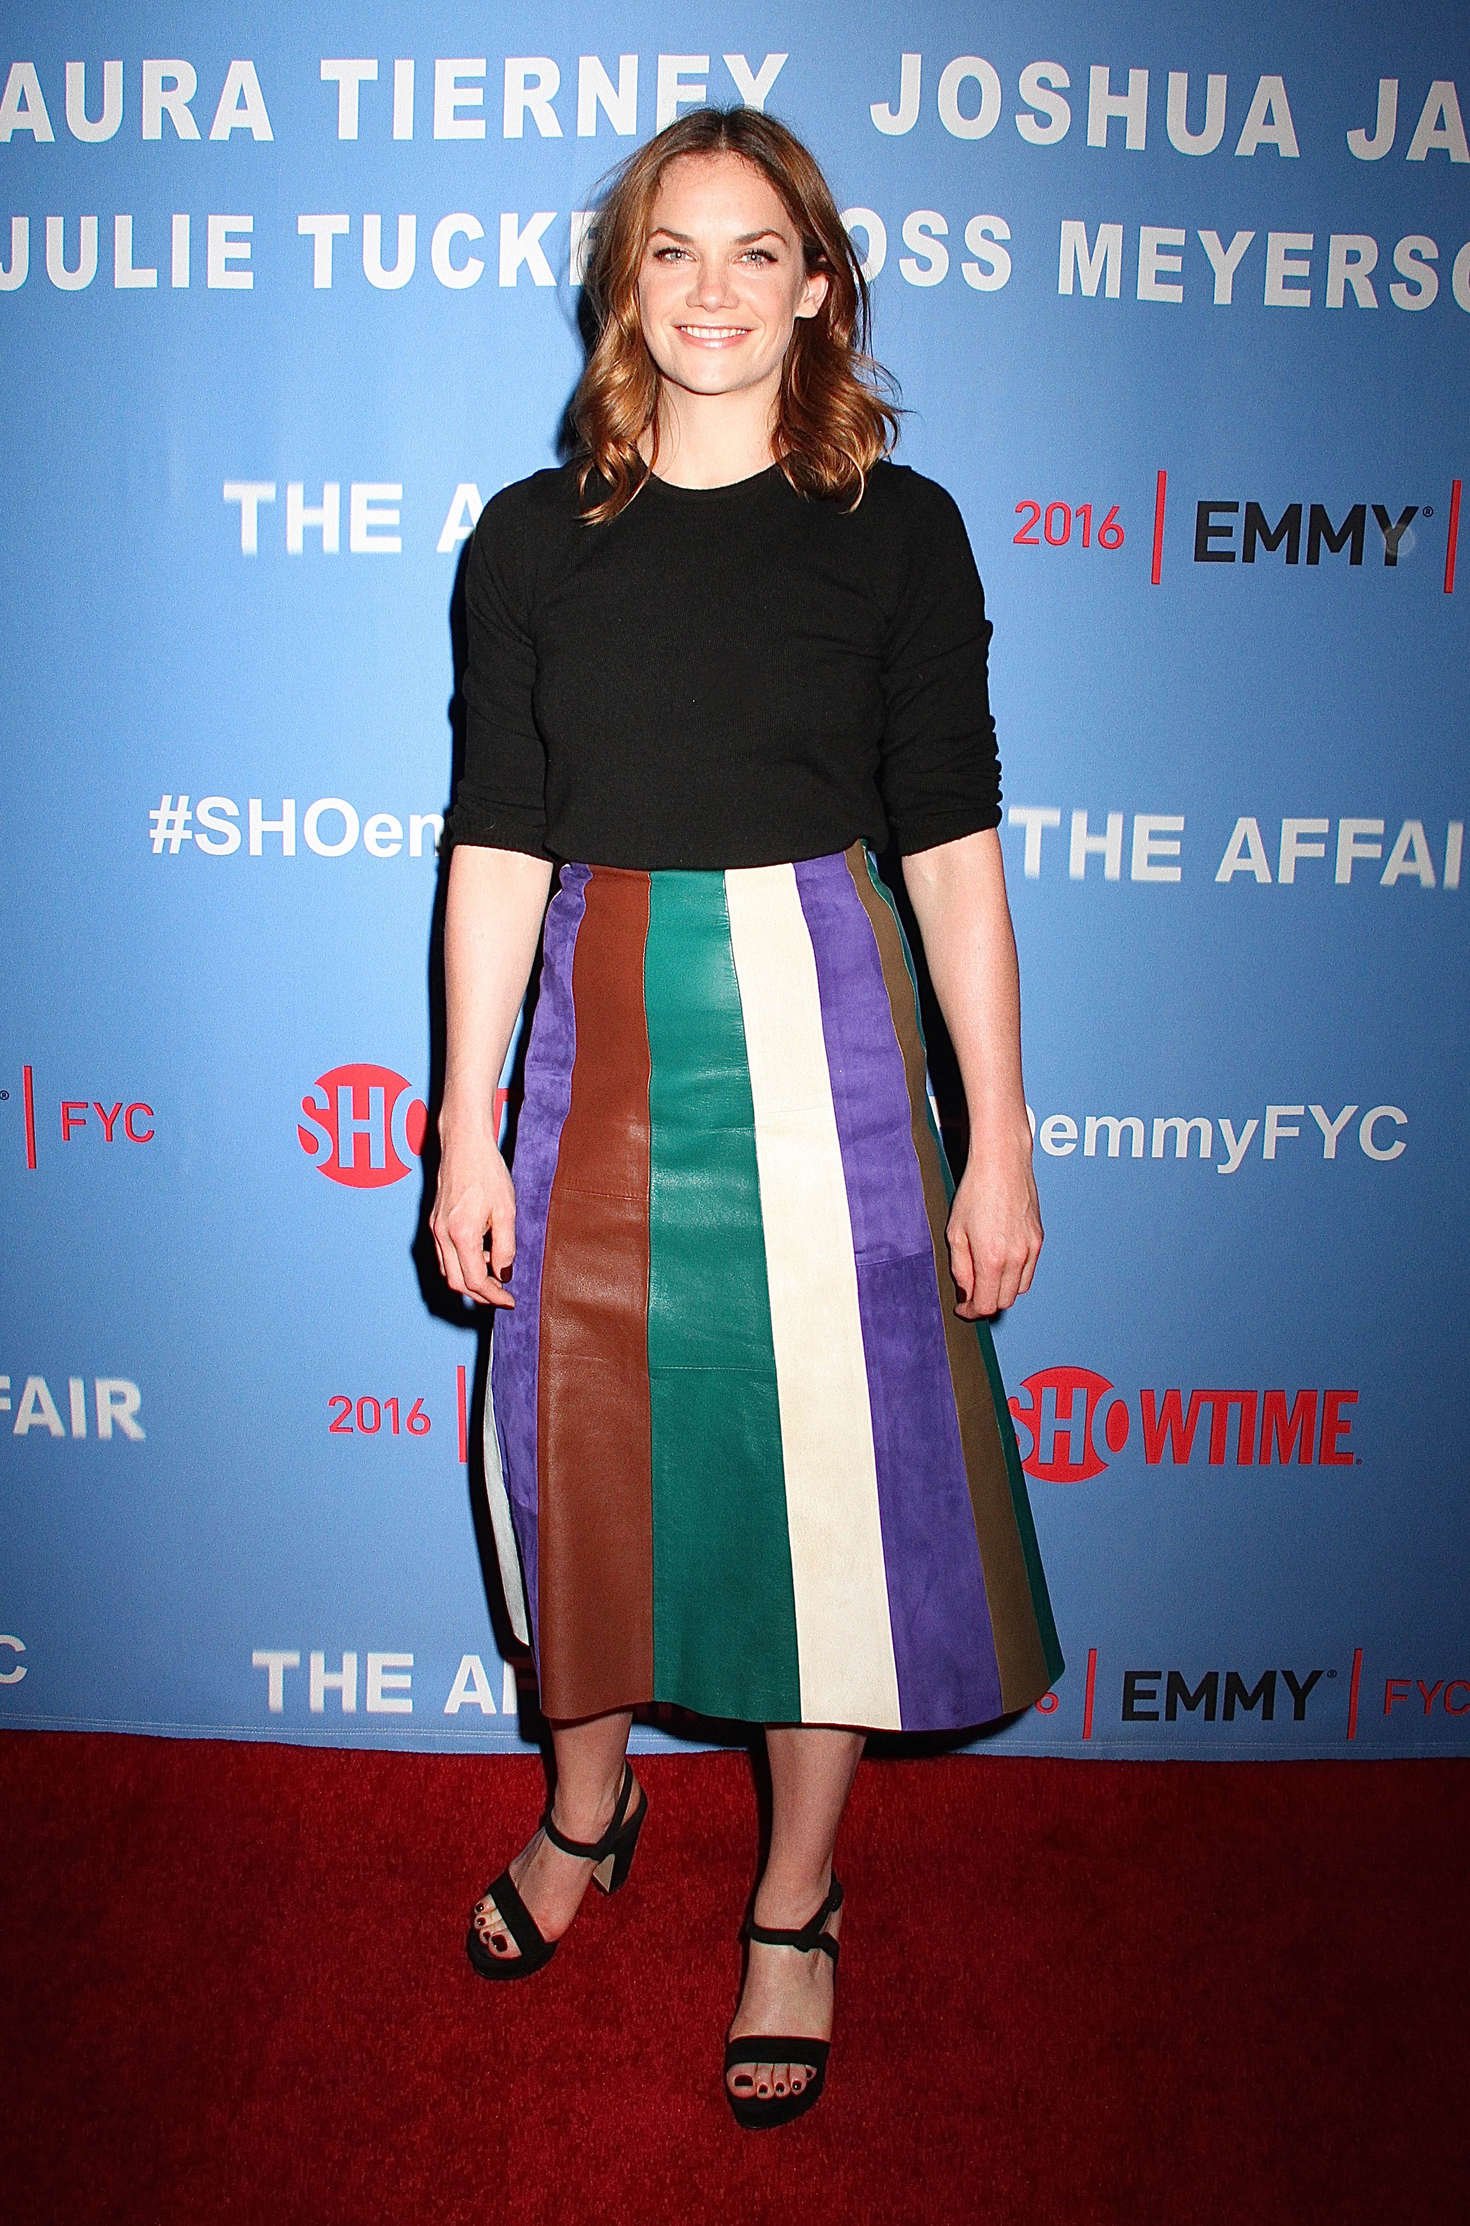 Ruth Wilson FYC Awards Screening and Conversation With The Affair Team in New York